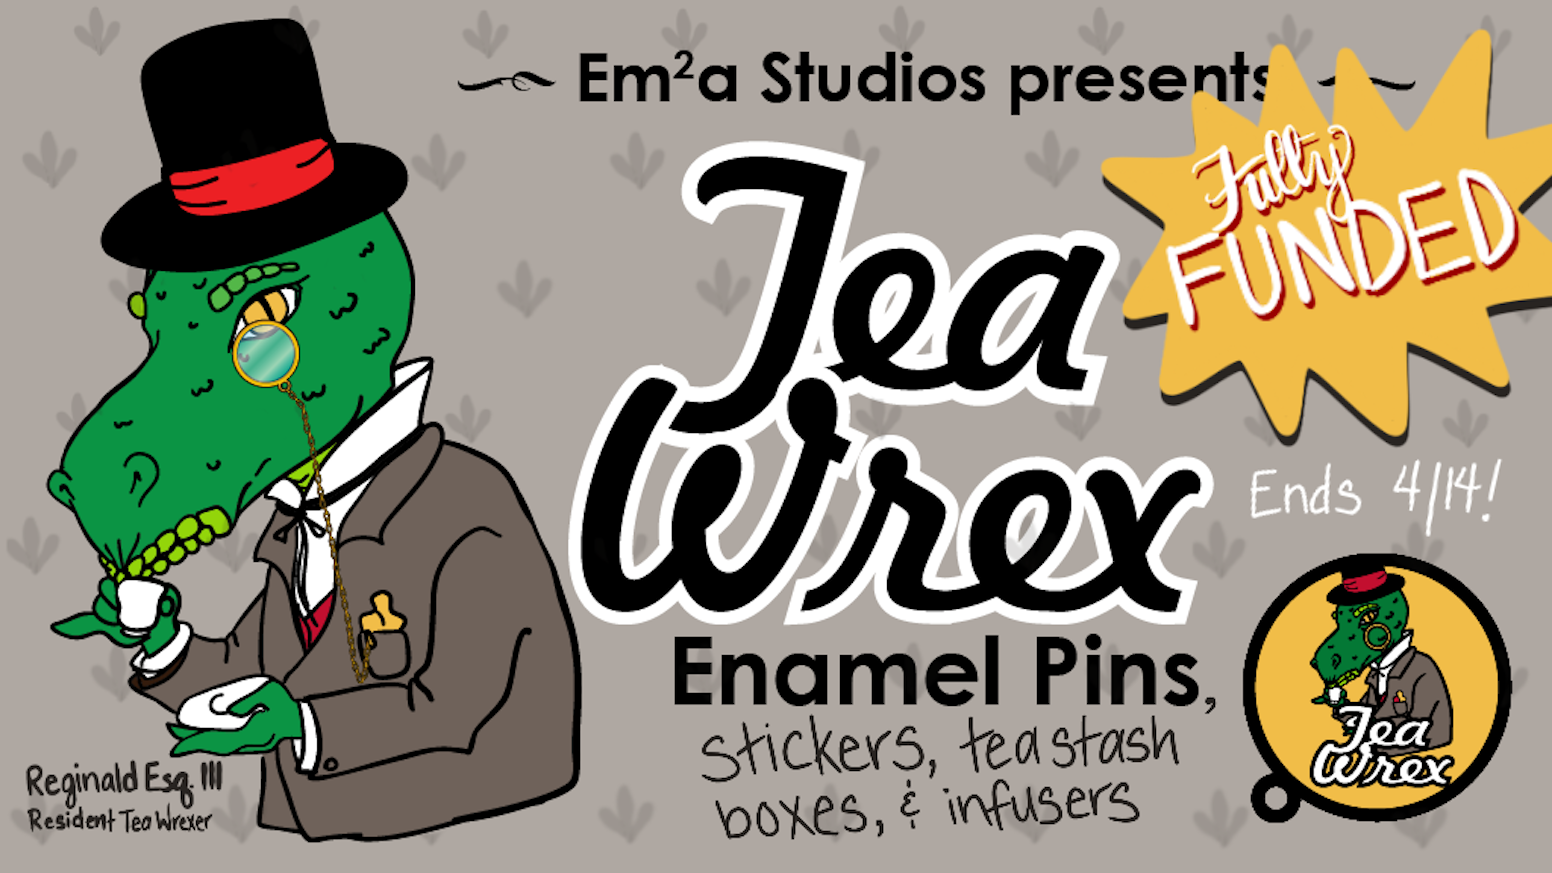 Funded in a mere 5 days, Em2a Studios brings to life Tea Wrex Enamel Pins and tea infusers.